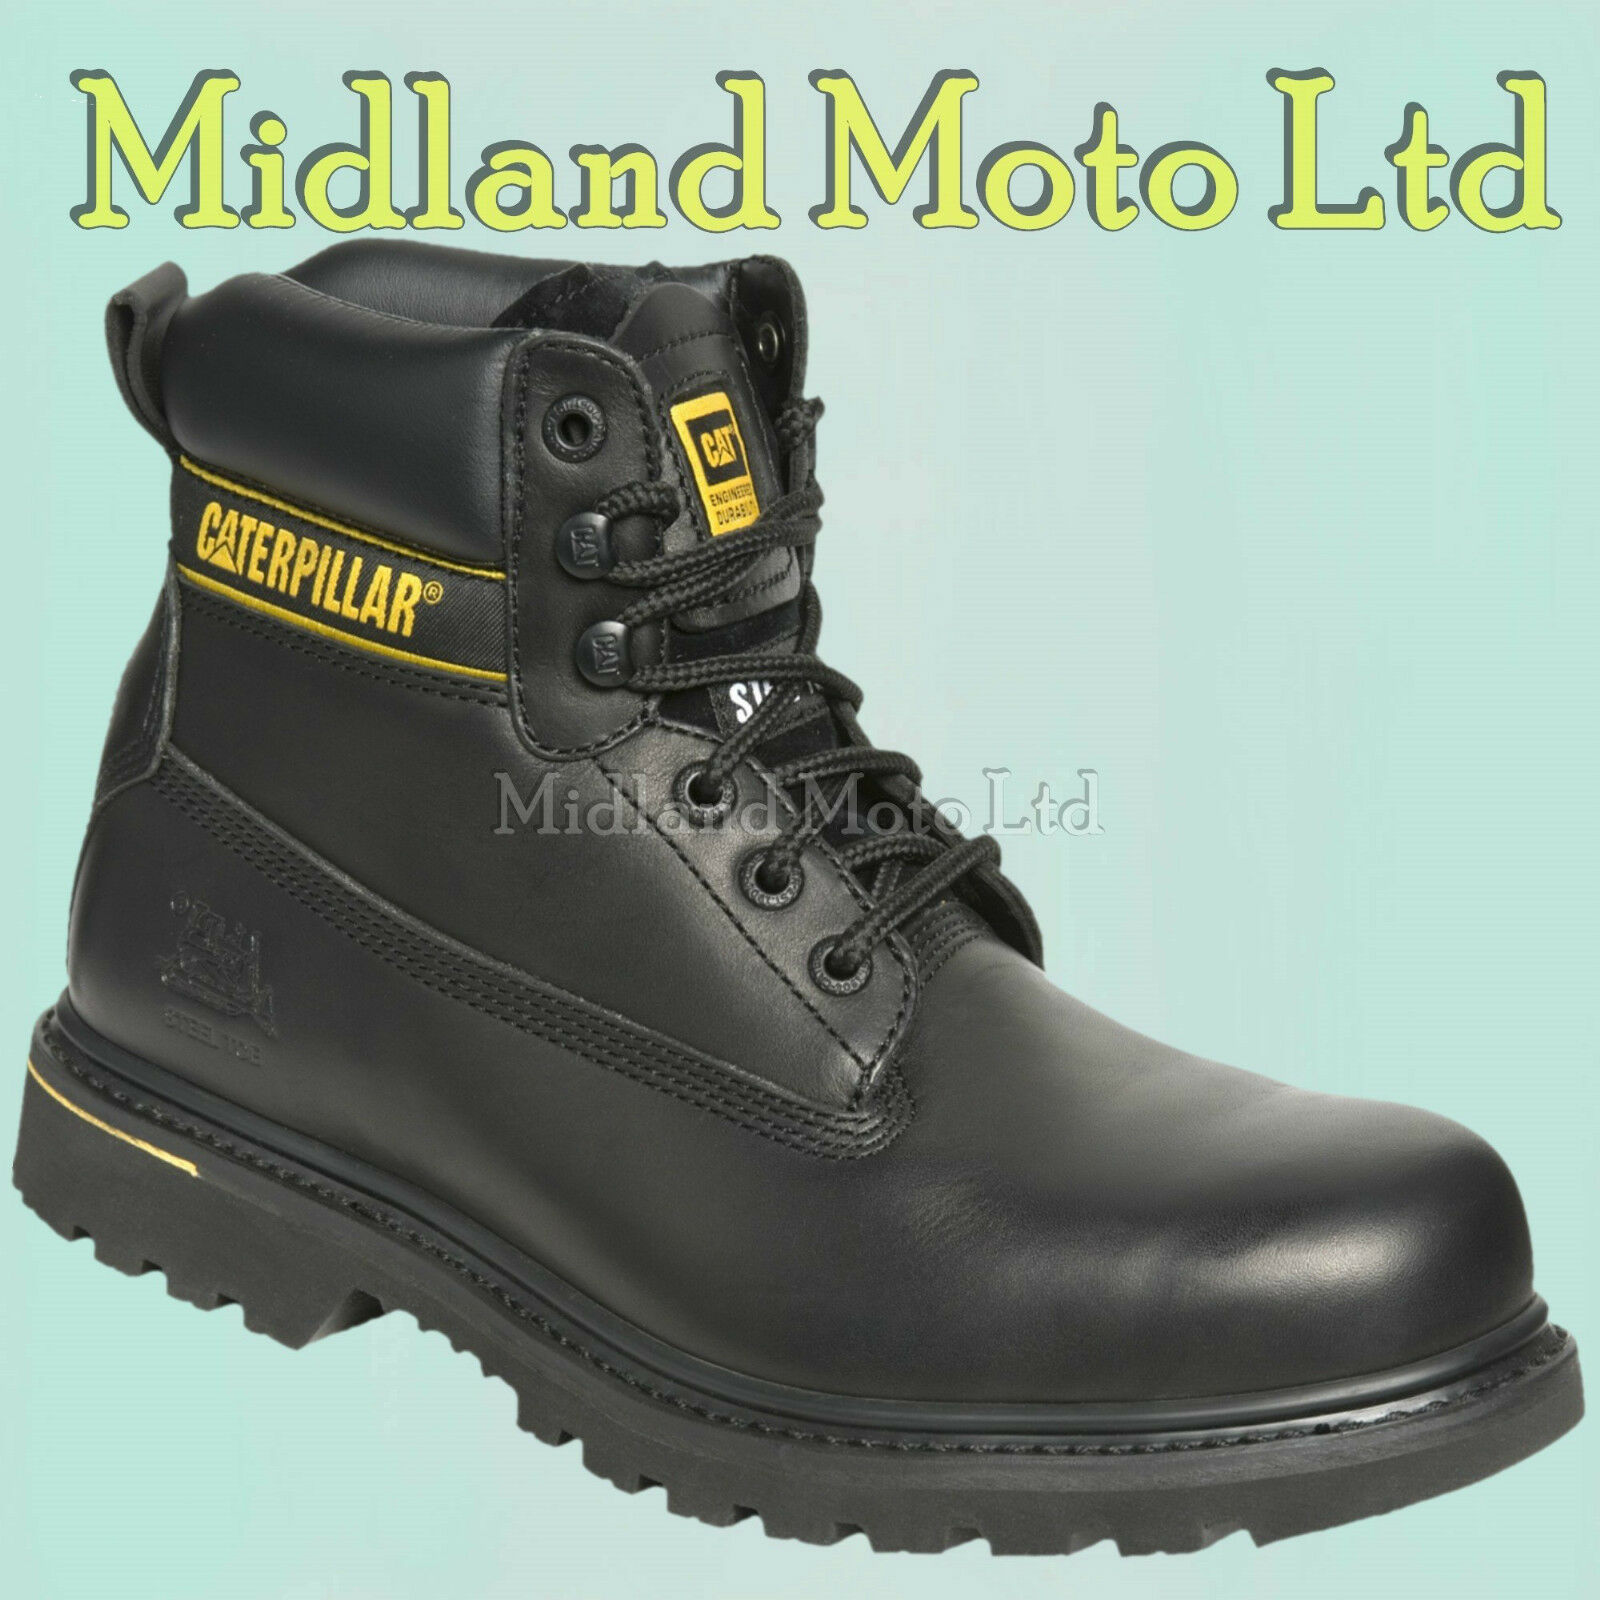 Caterpillar Cap Holton SB Steel Toe Cap Caterpillar sicurezza Nero Pelle Stivali, CAT, Scarpe 5156c1